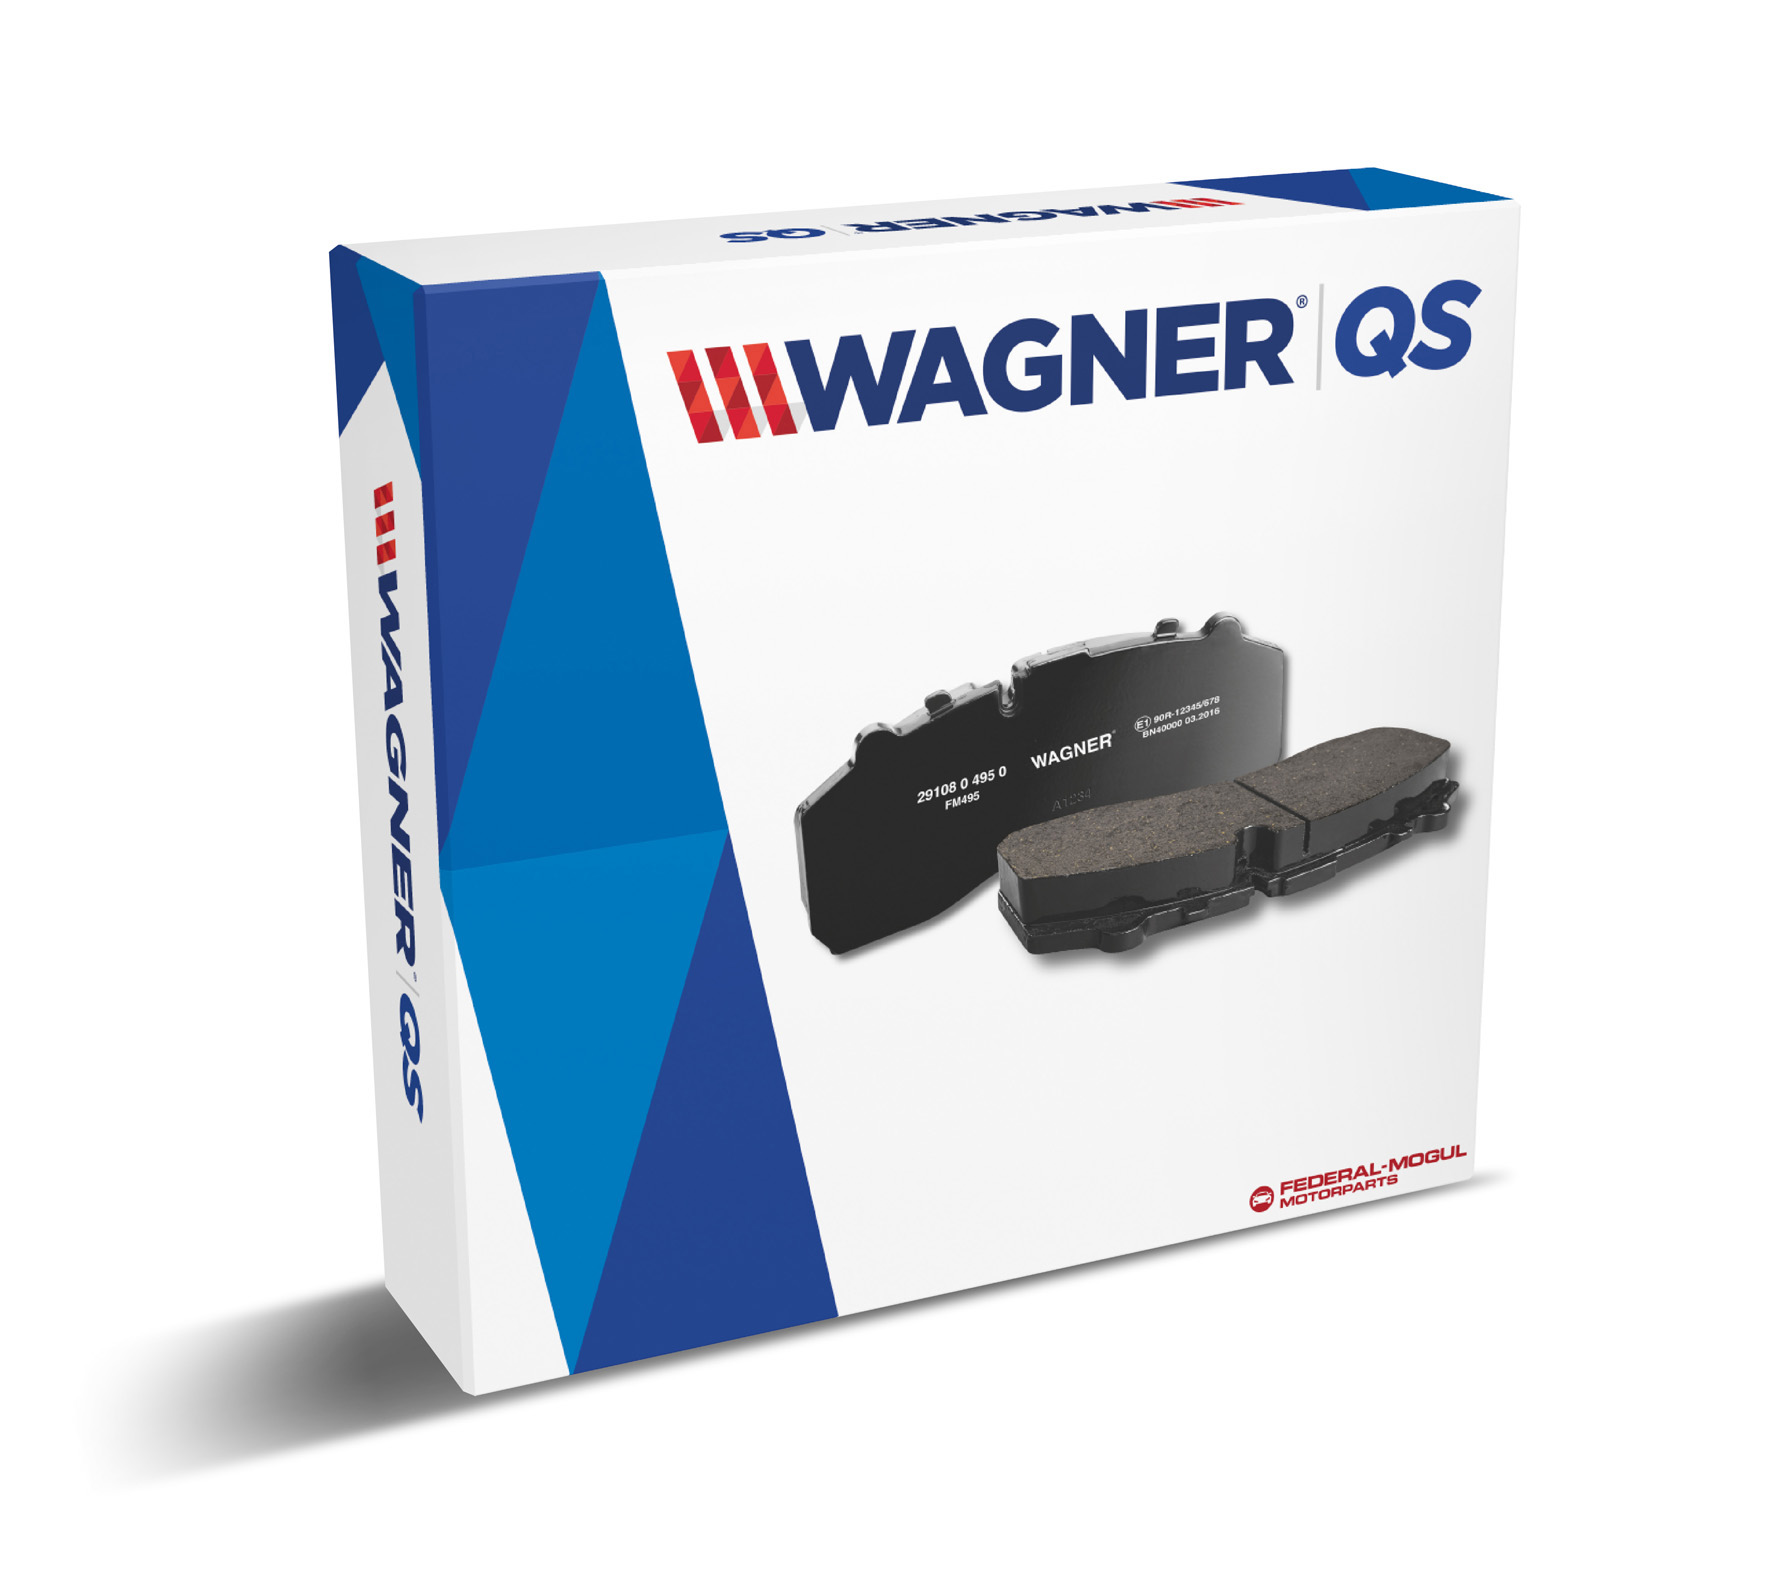 Wagner QS Pads_Pack